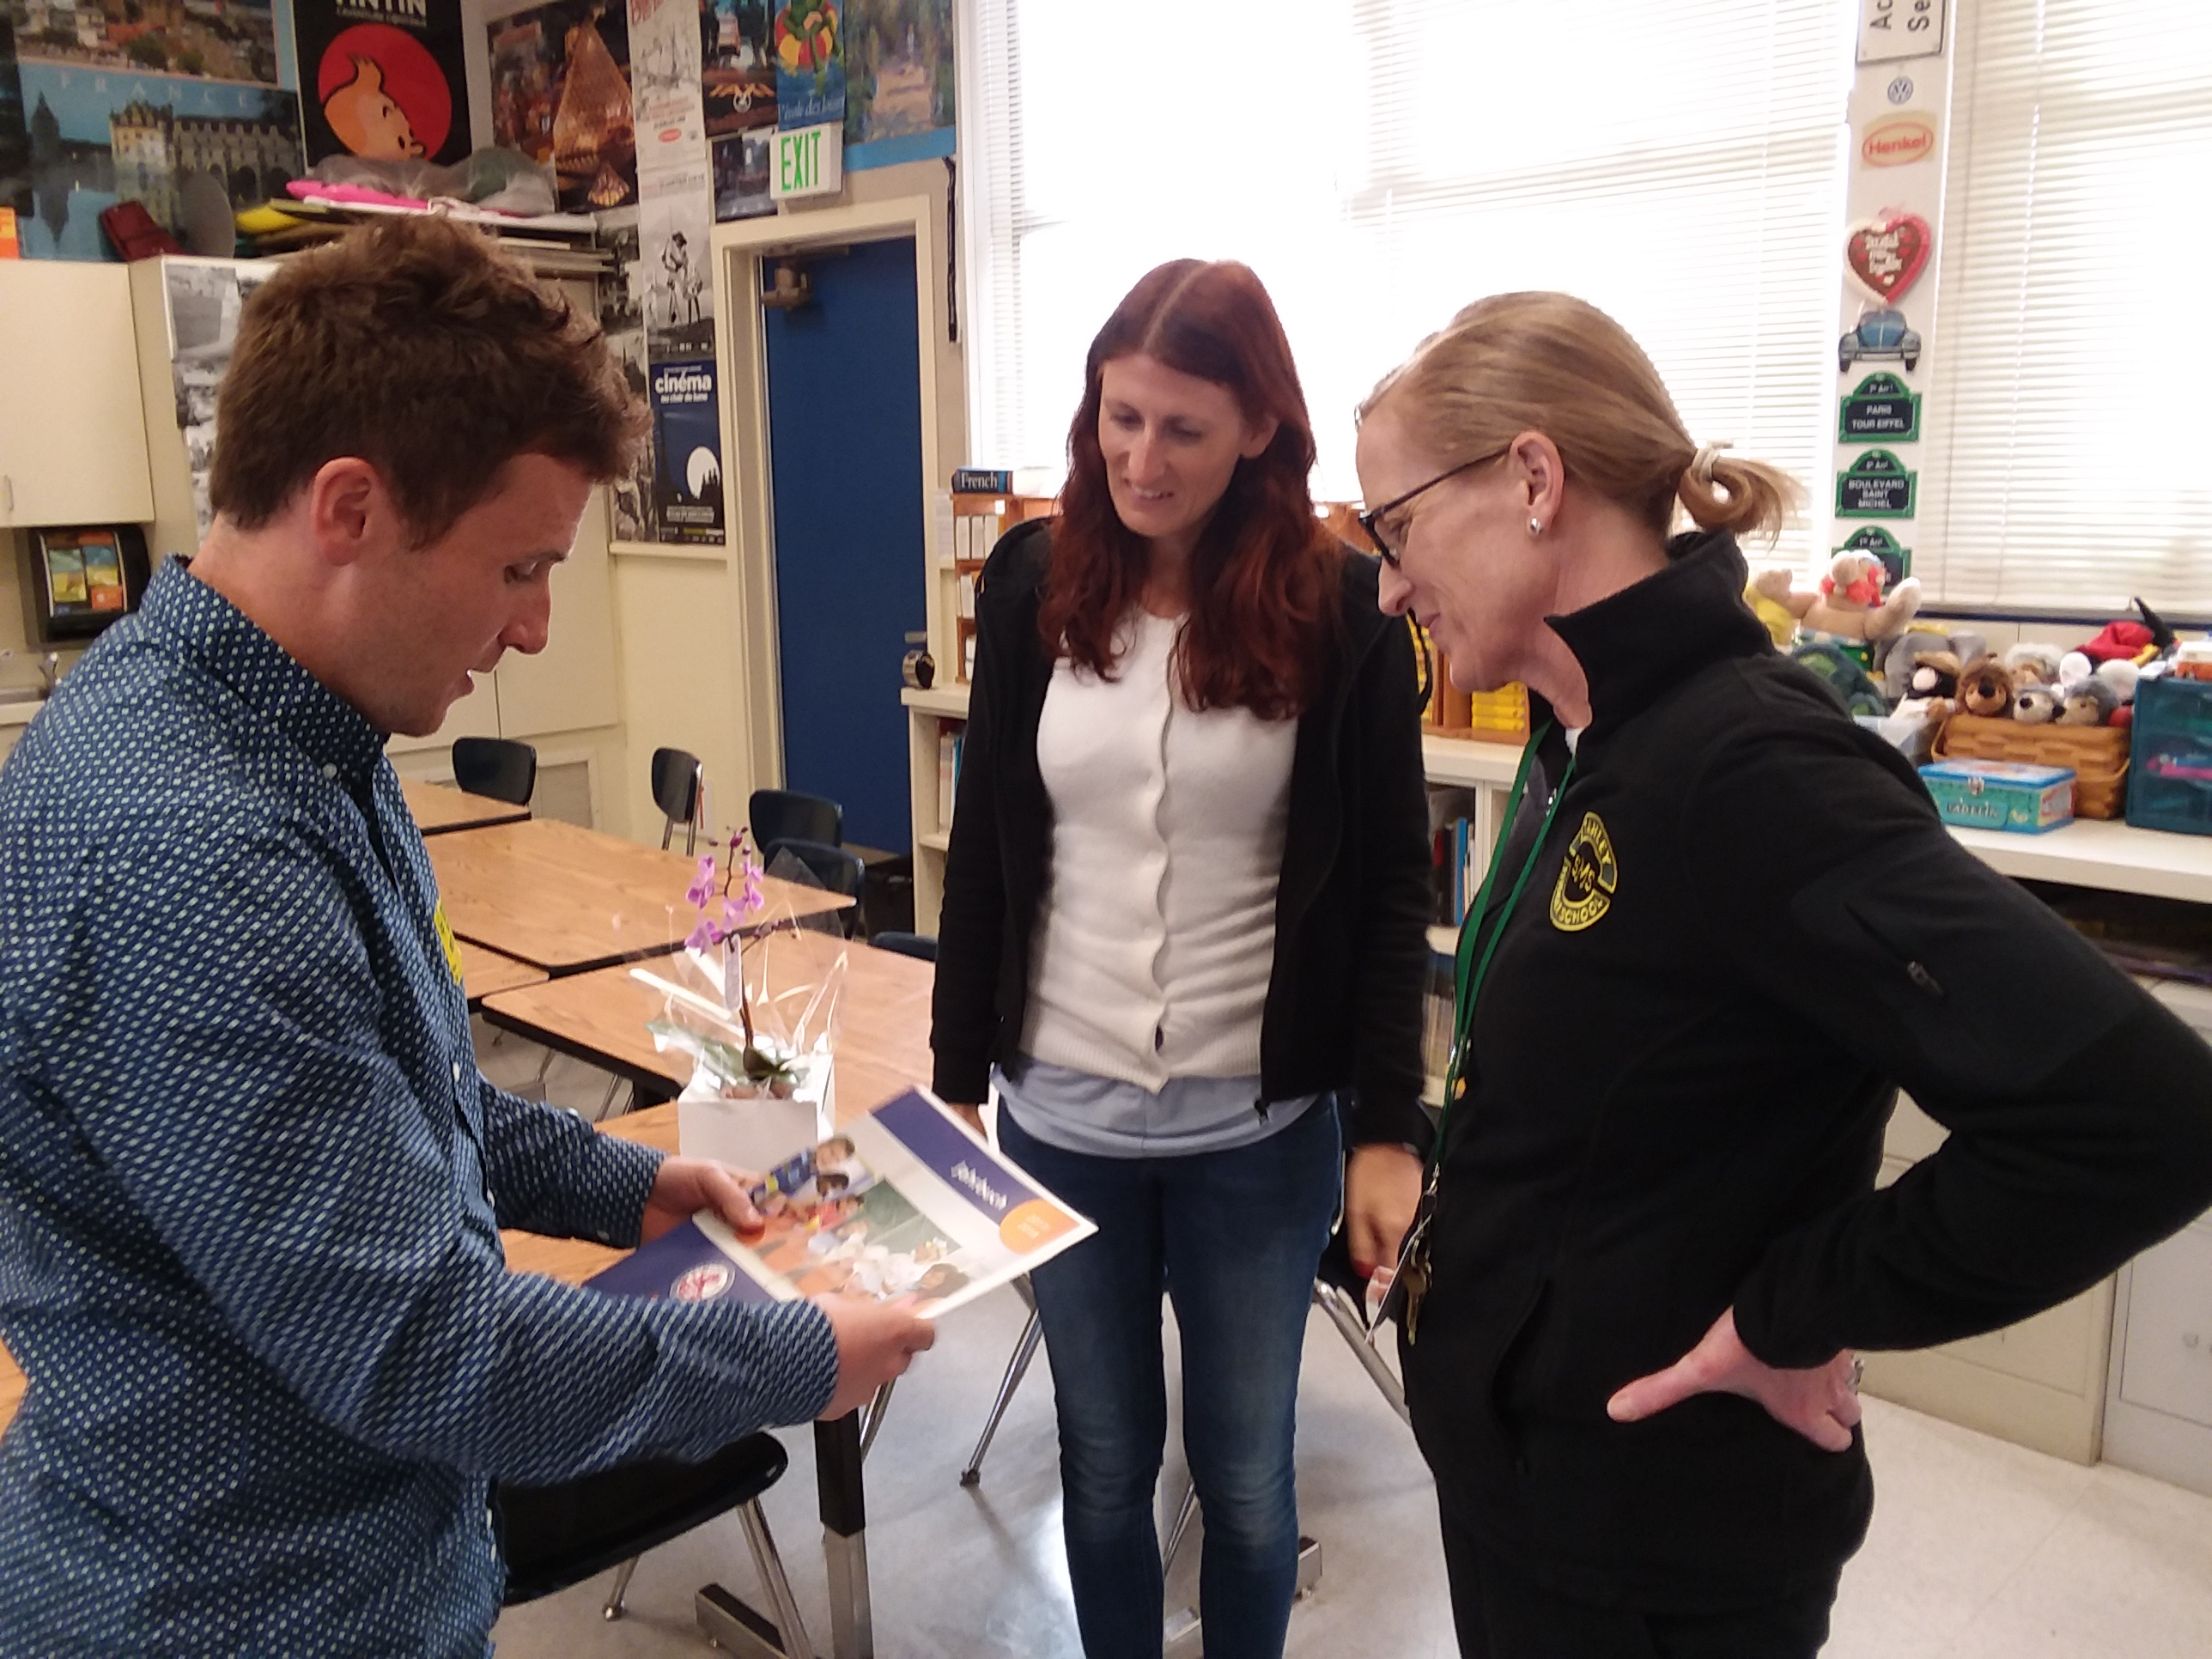 Visit by the principal with the teachers from Englisches Institut